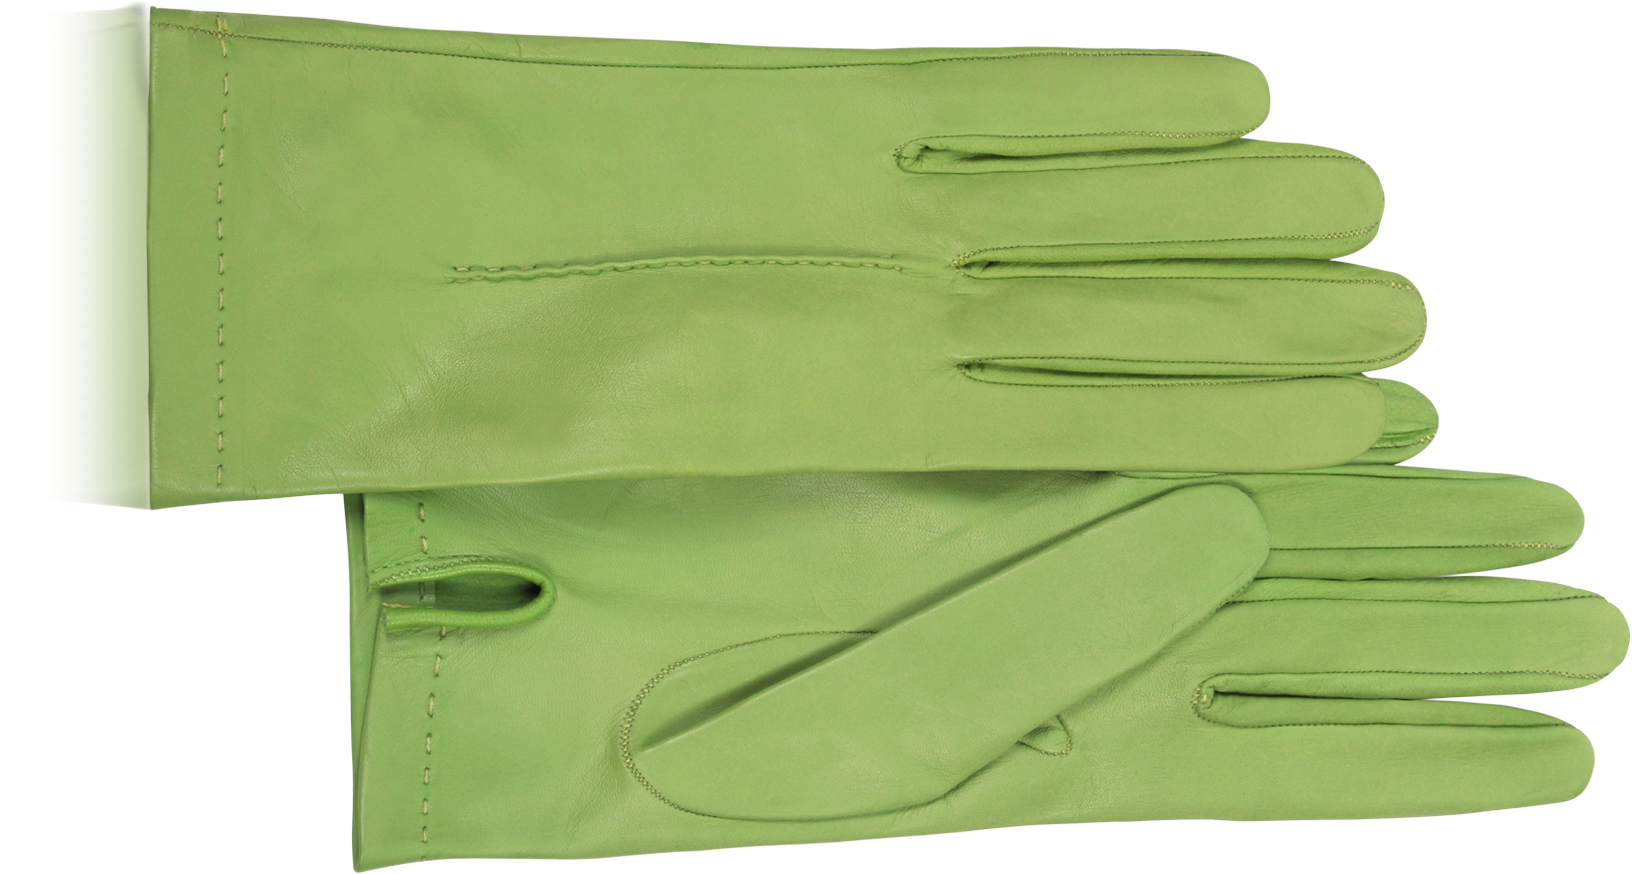 Greenery, Pantone's Color of the Year, can be seen in leather gloves by Forzieri.